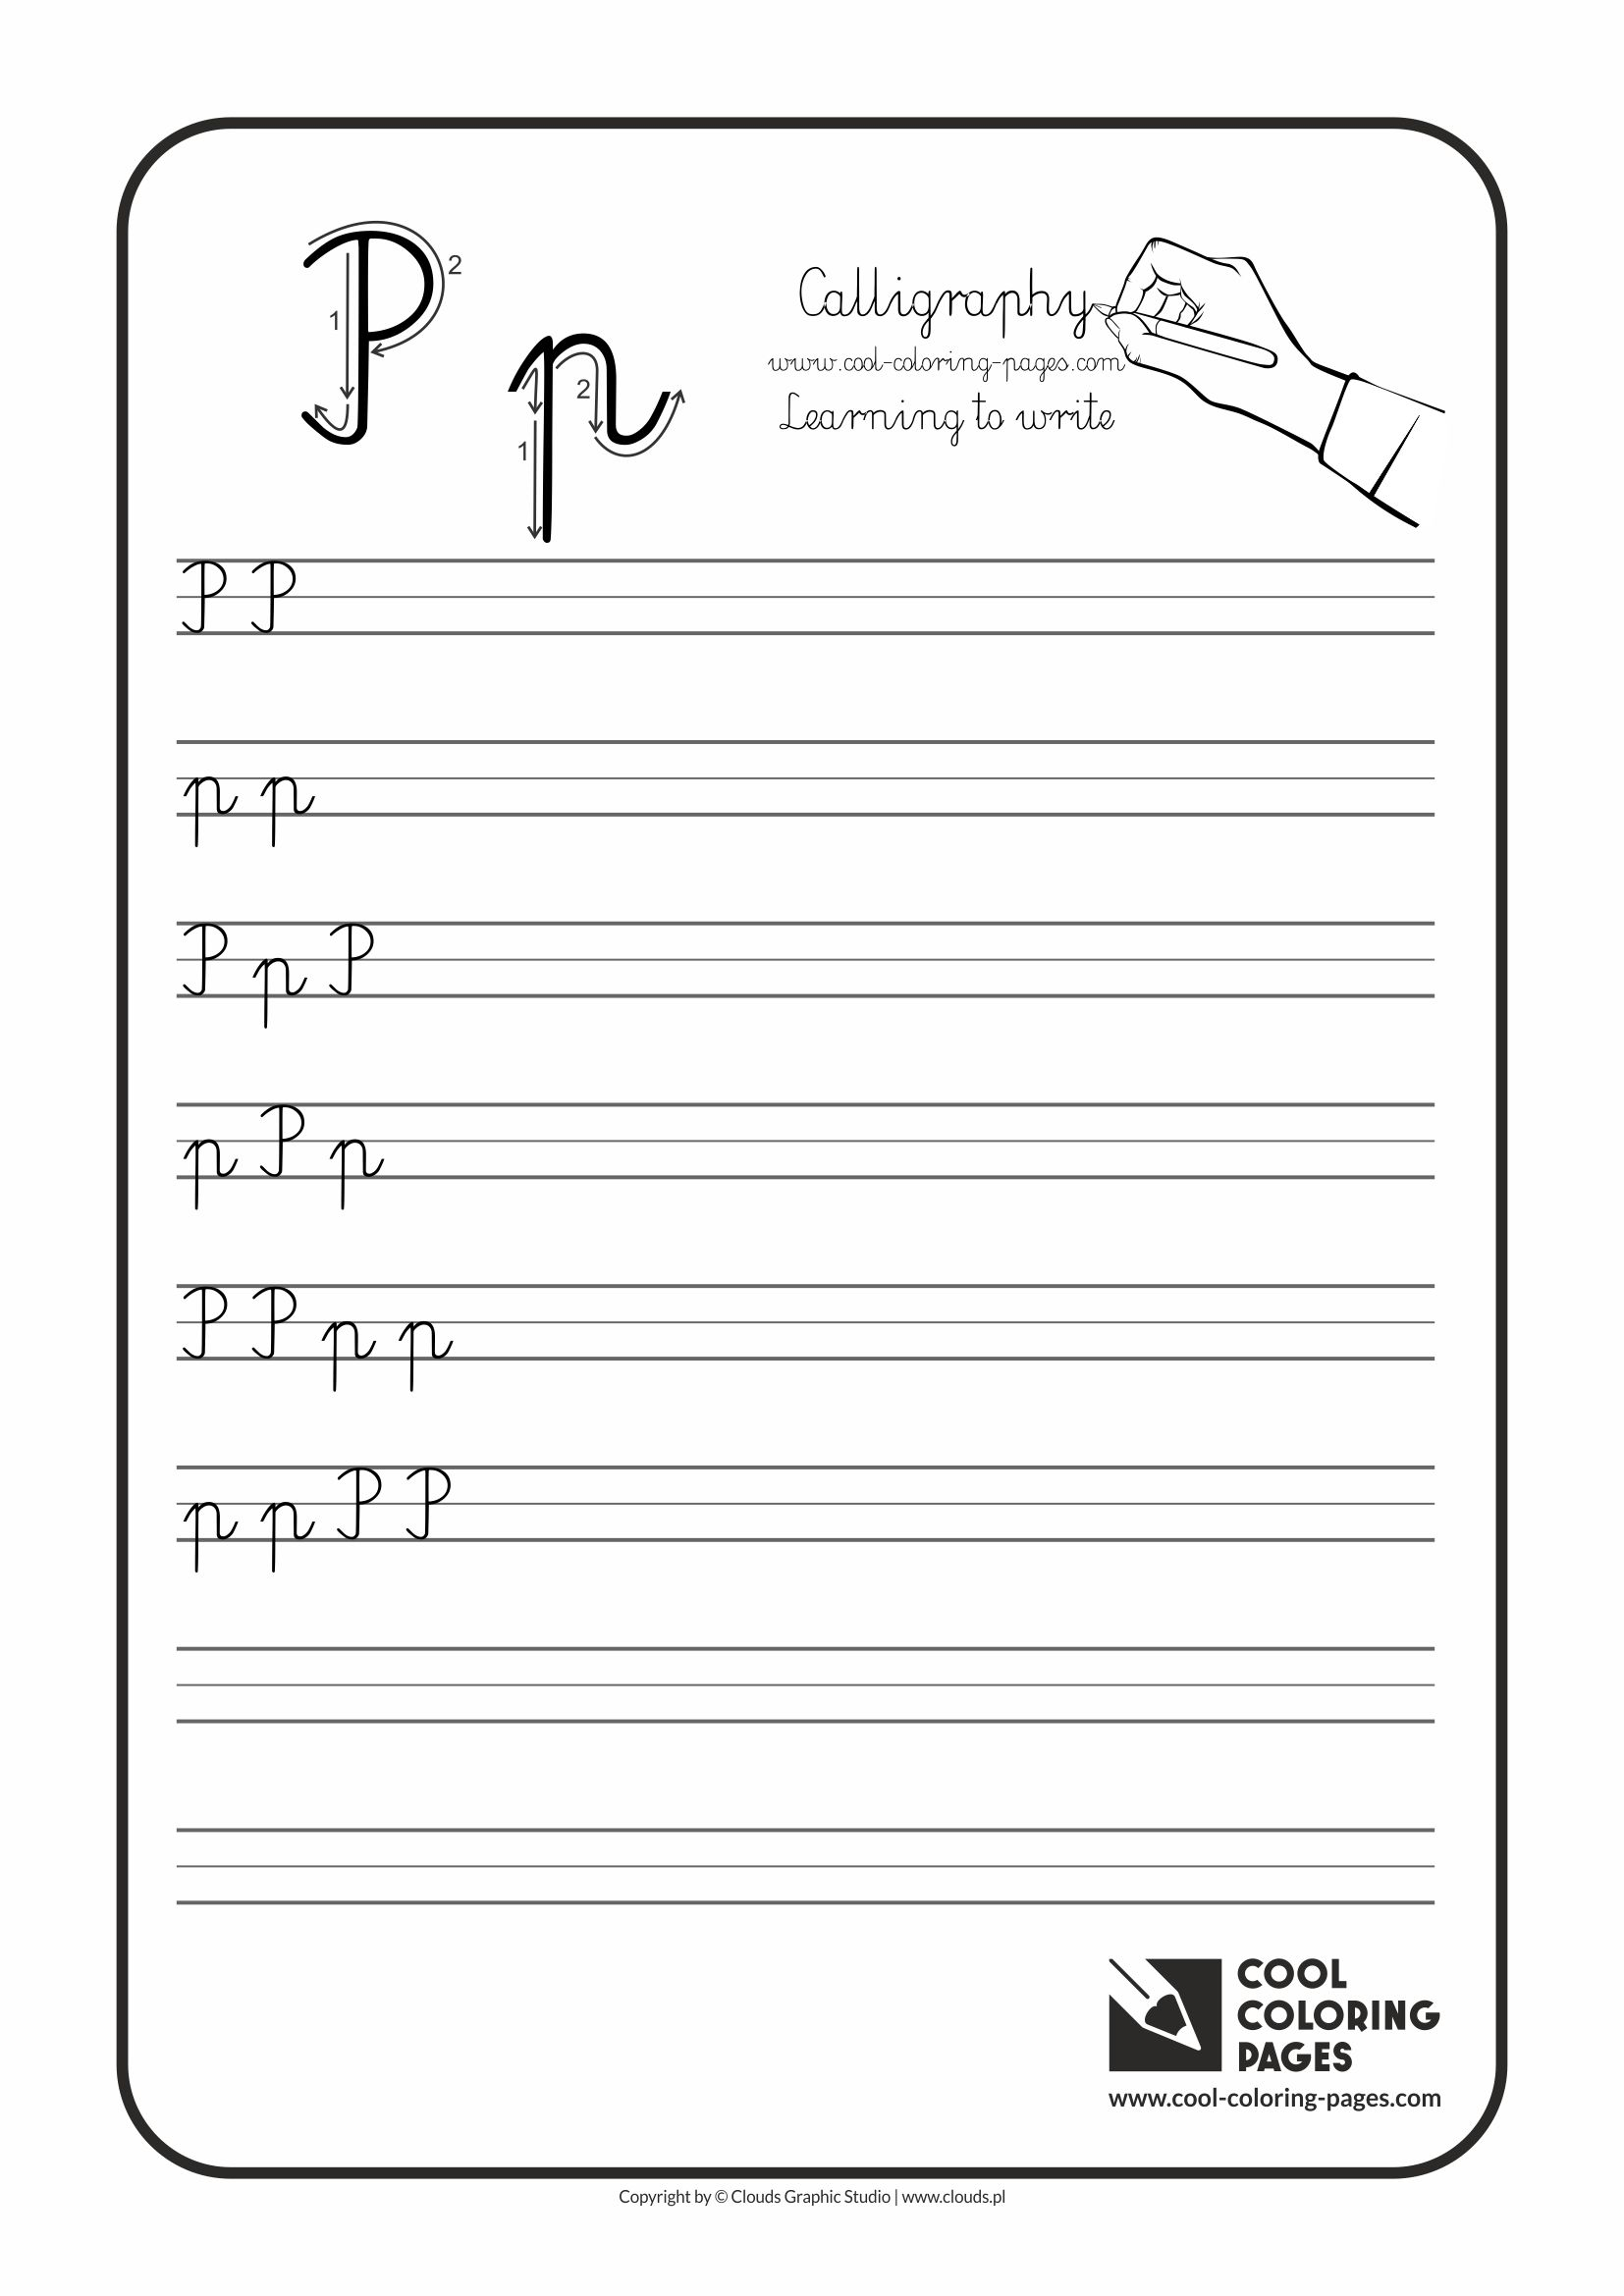 Coloring pages for letter p - Cool Coloring Pages Calligraphy Letter P Handwriting For Kids Worksheet